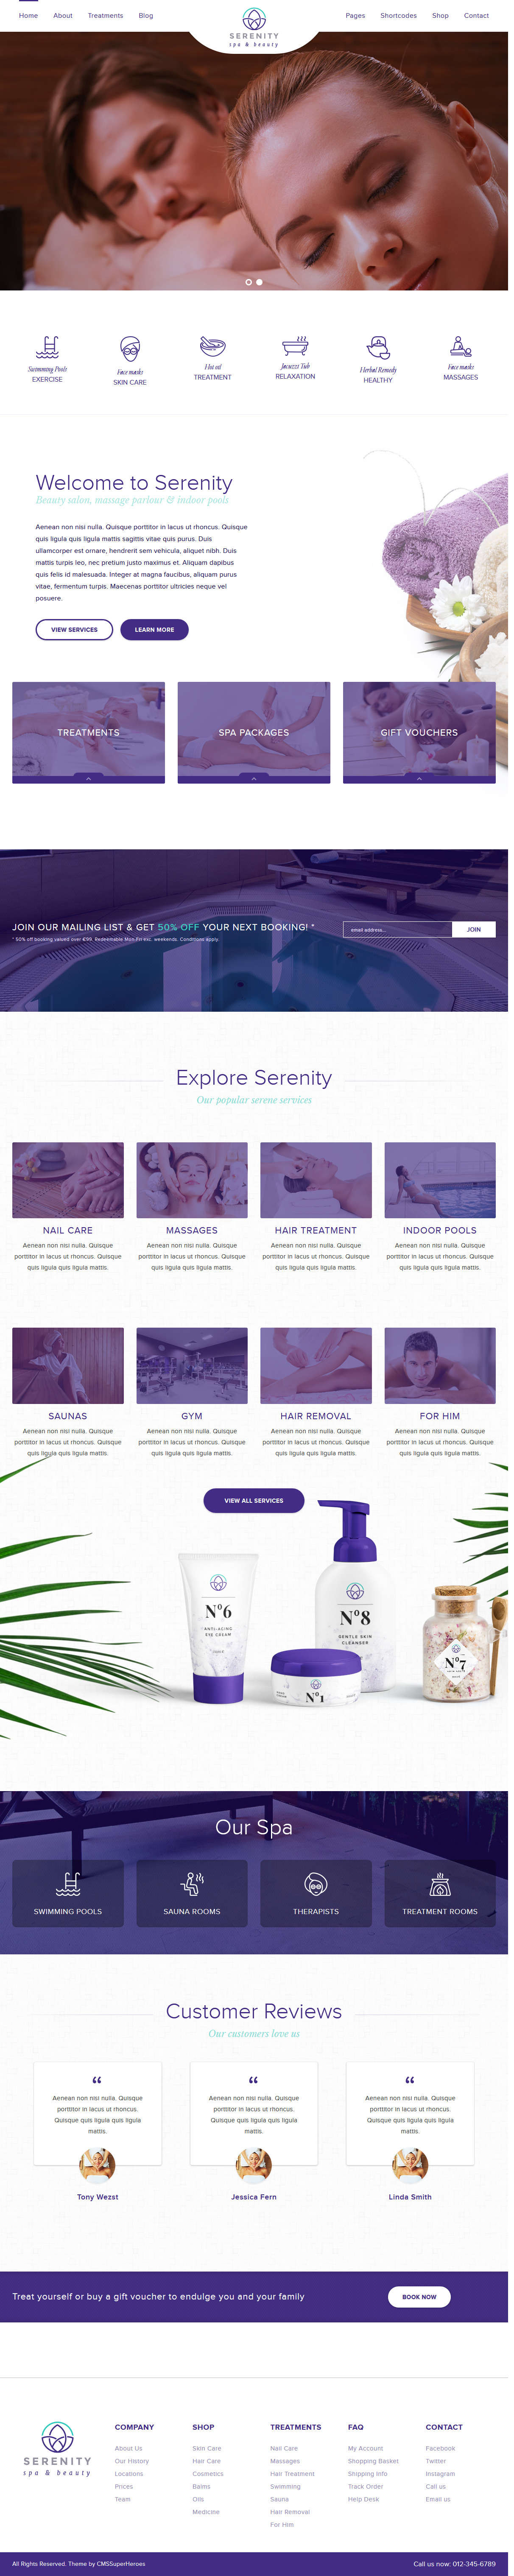 serenity spa beauty best premium spa beauty wordpress theme - 10+ Best Premium Spa and Beauty WordPress Themes